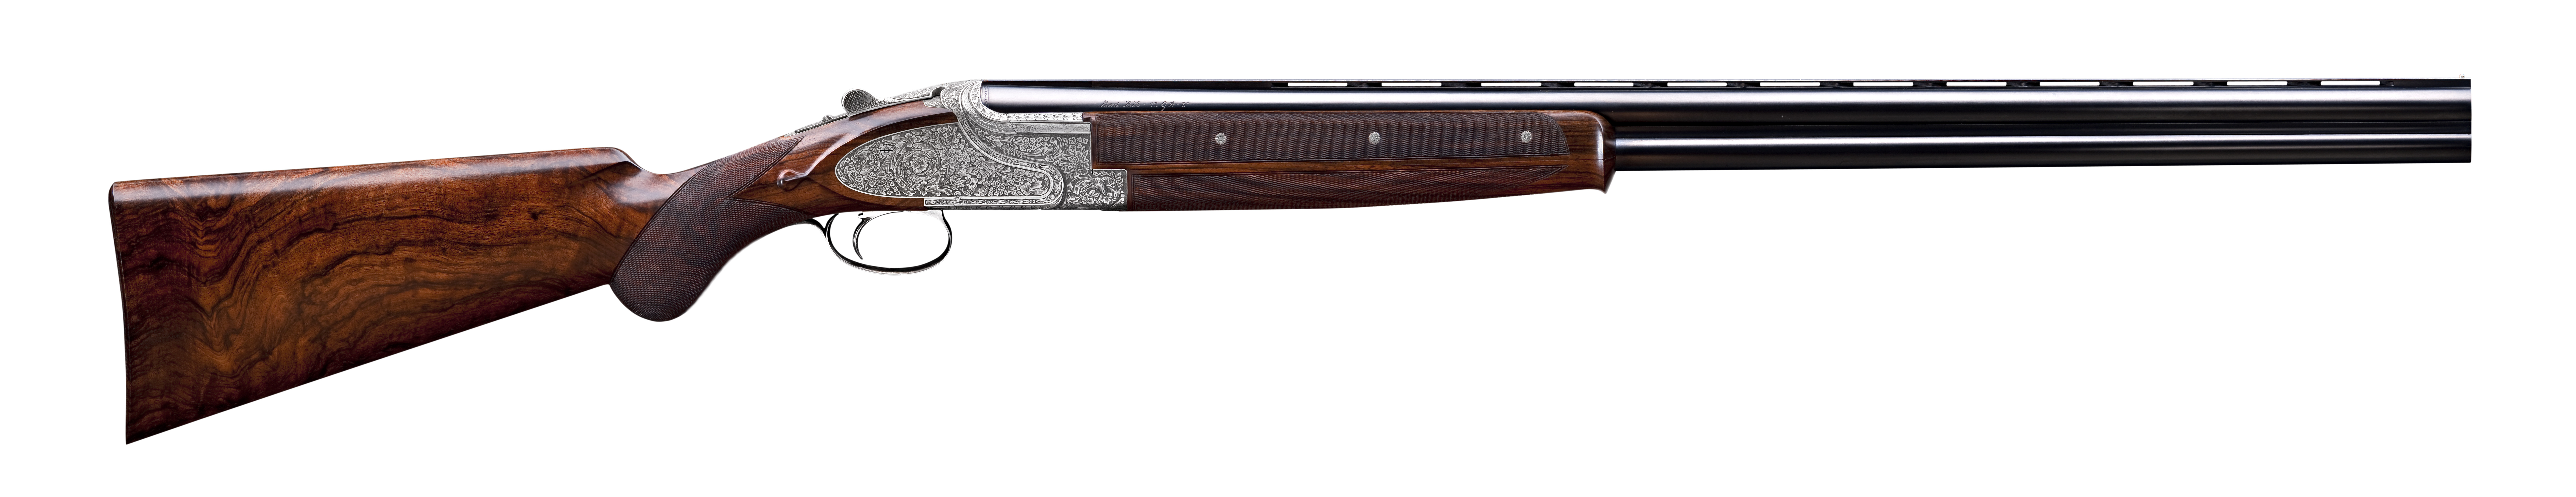 Browning-le-fusil-superposé-B25